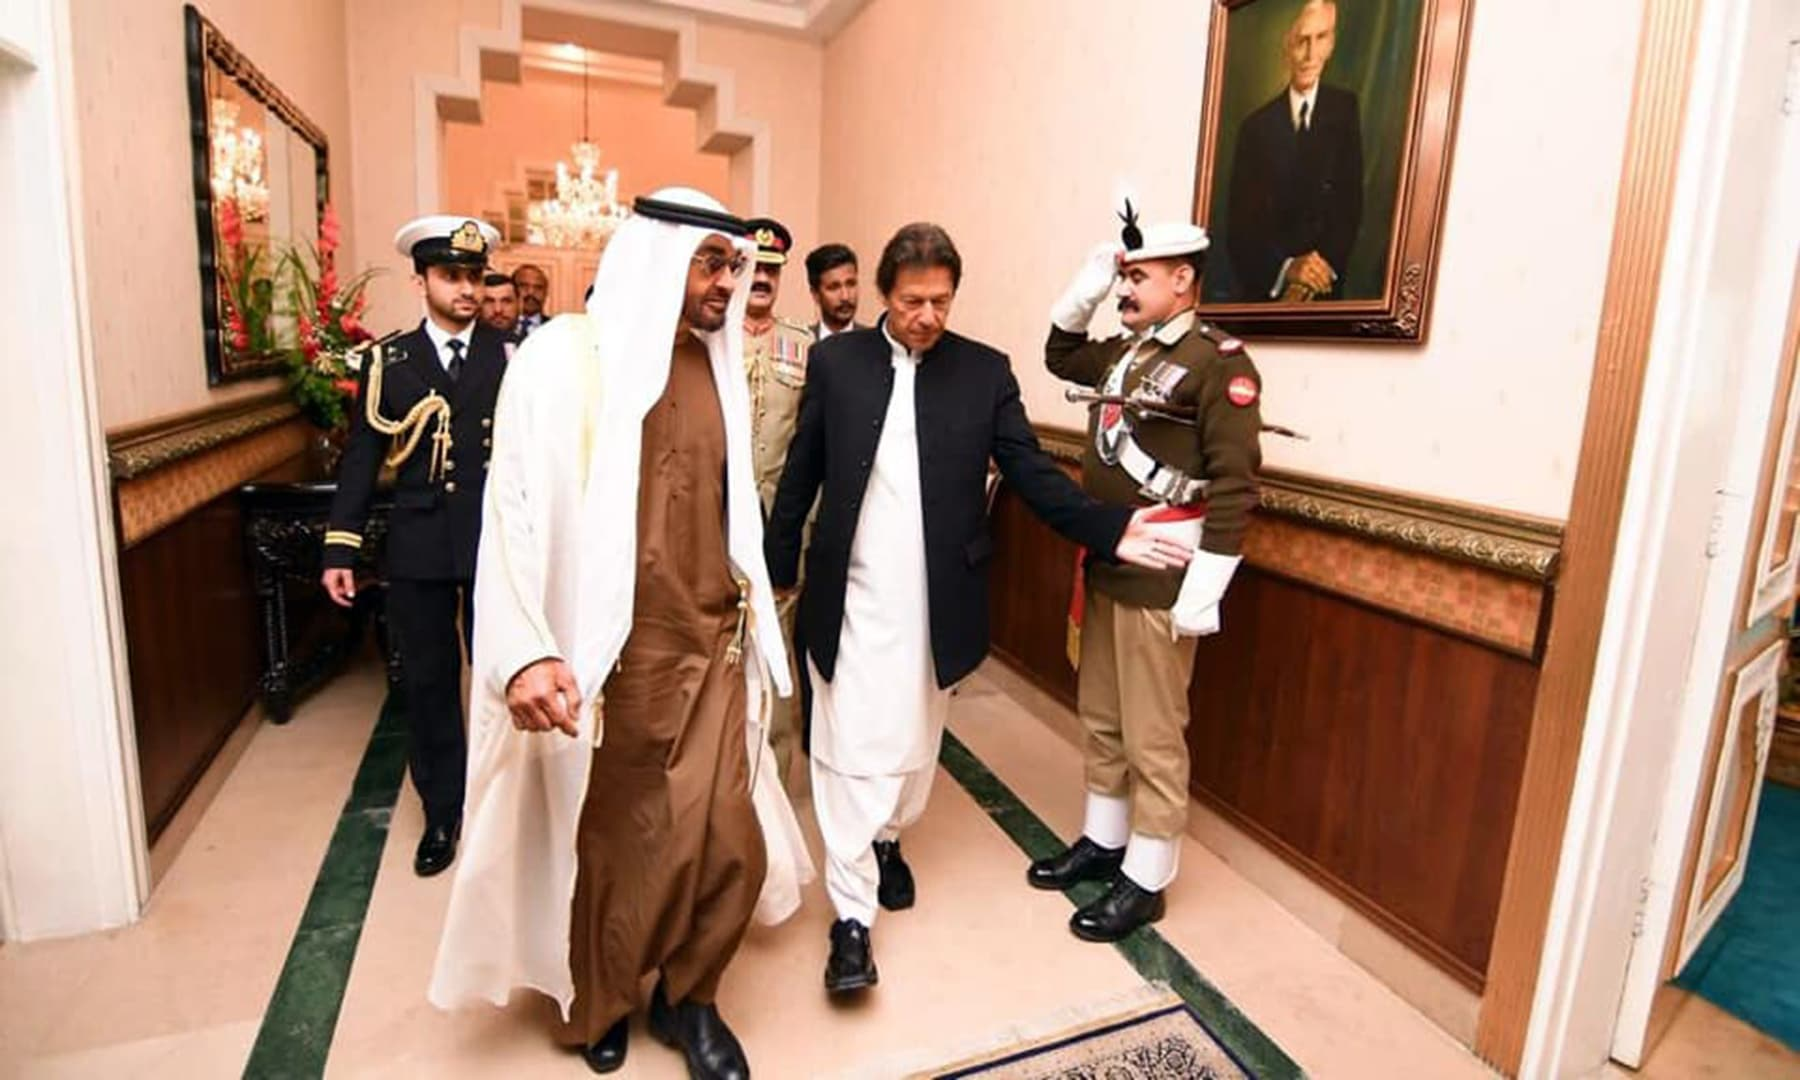 Prime Minister Khan walks with the UAE crown prince inside the PM House. — Photo courtesy: Radio Pakistan